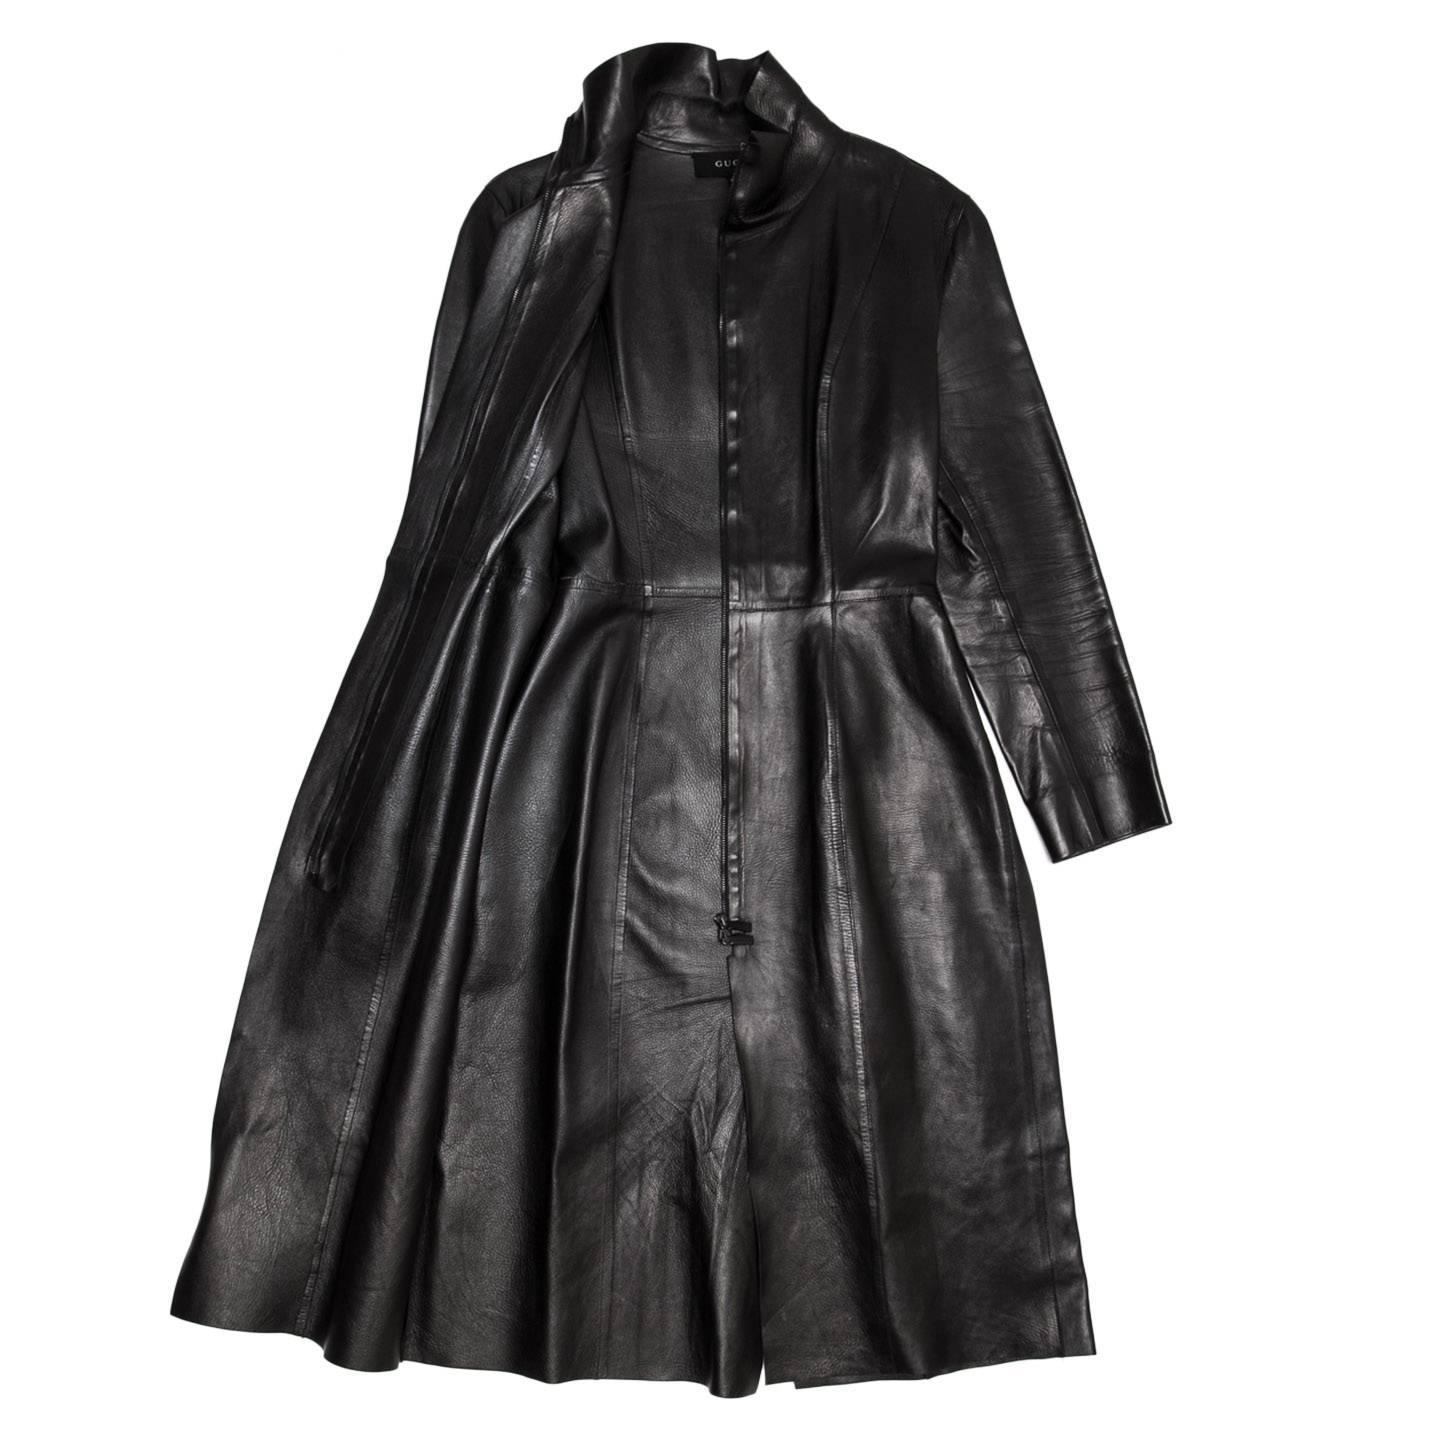 A men's XL long leather coat has the practicality of a working overcoat and the flair of something much more overtly stylish, and its heavy leather makeup means that it is durable and will last for years so long as it is cared for properly. You can find a men's long leather coat in the vast inventory on eBay.